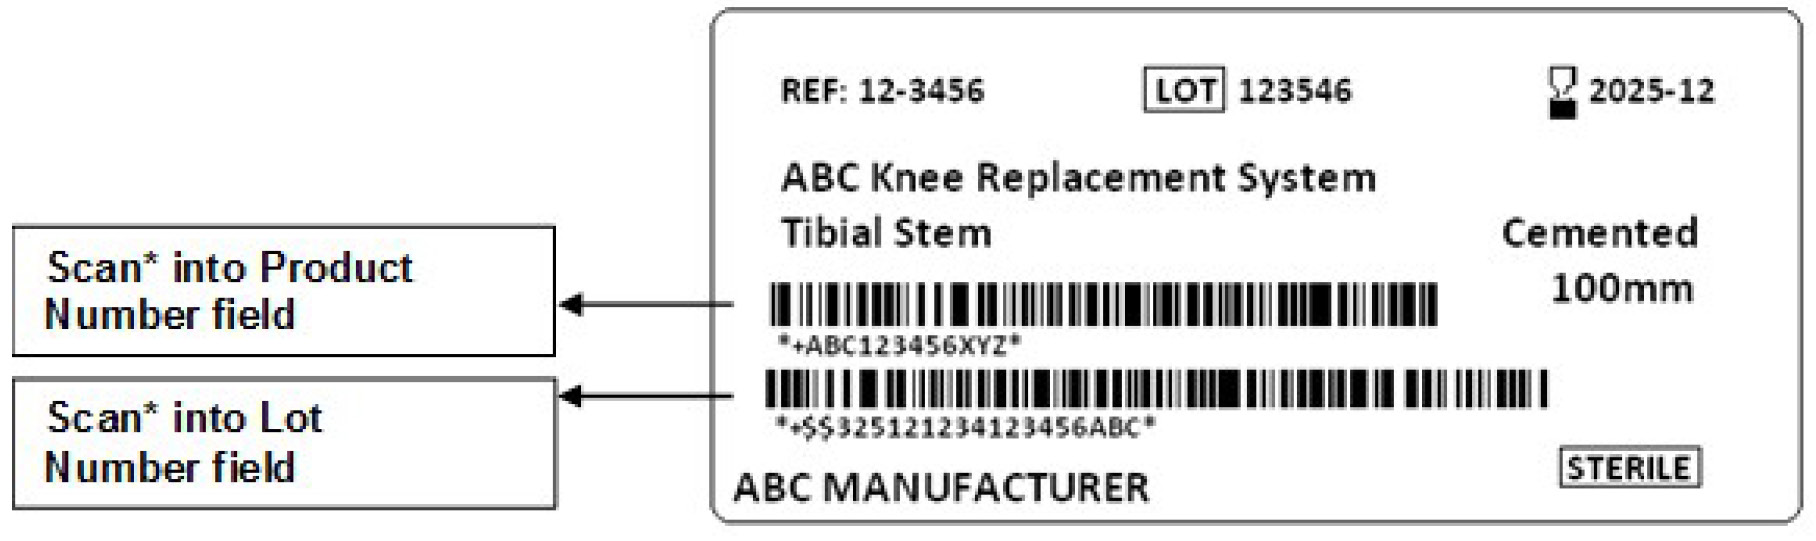 A sample sticker with 2 barcodes that are not identified. The first (top) barcode is for the Product Number field and the second (bottom) barcode is for the Lot Number field